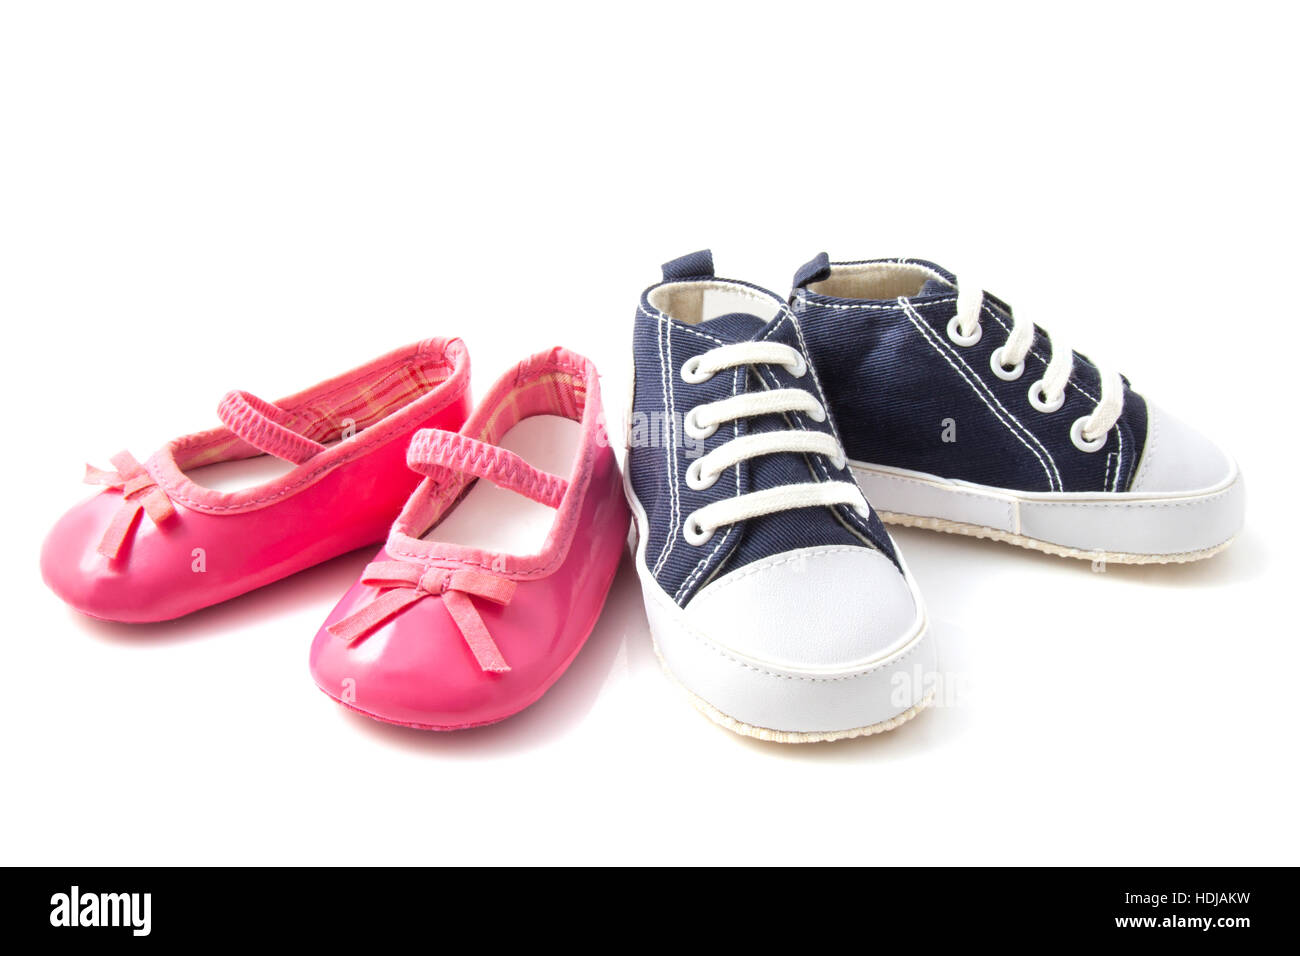 Pink baby ballet shoes and blue baby sneakers isolated over white - Stock Image